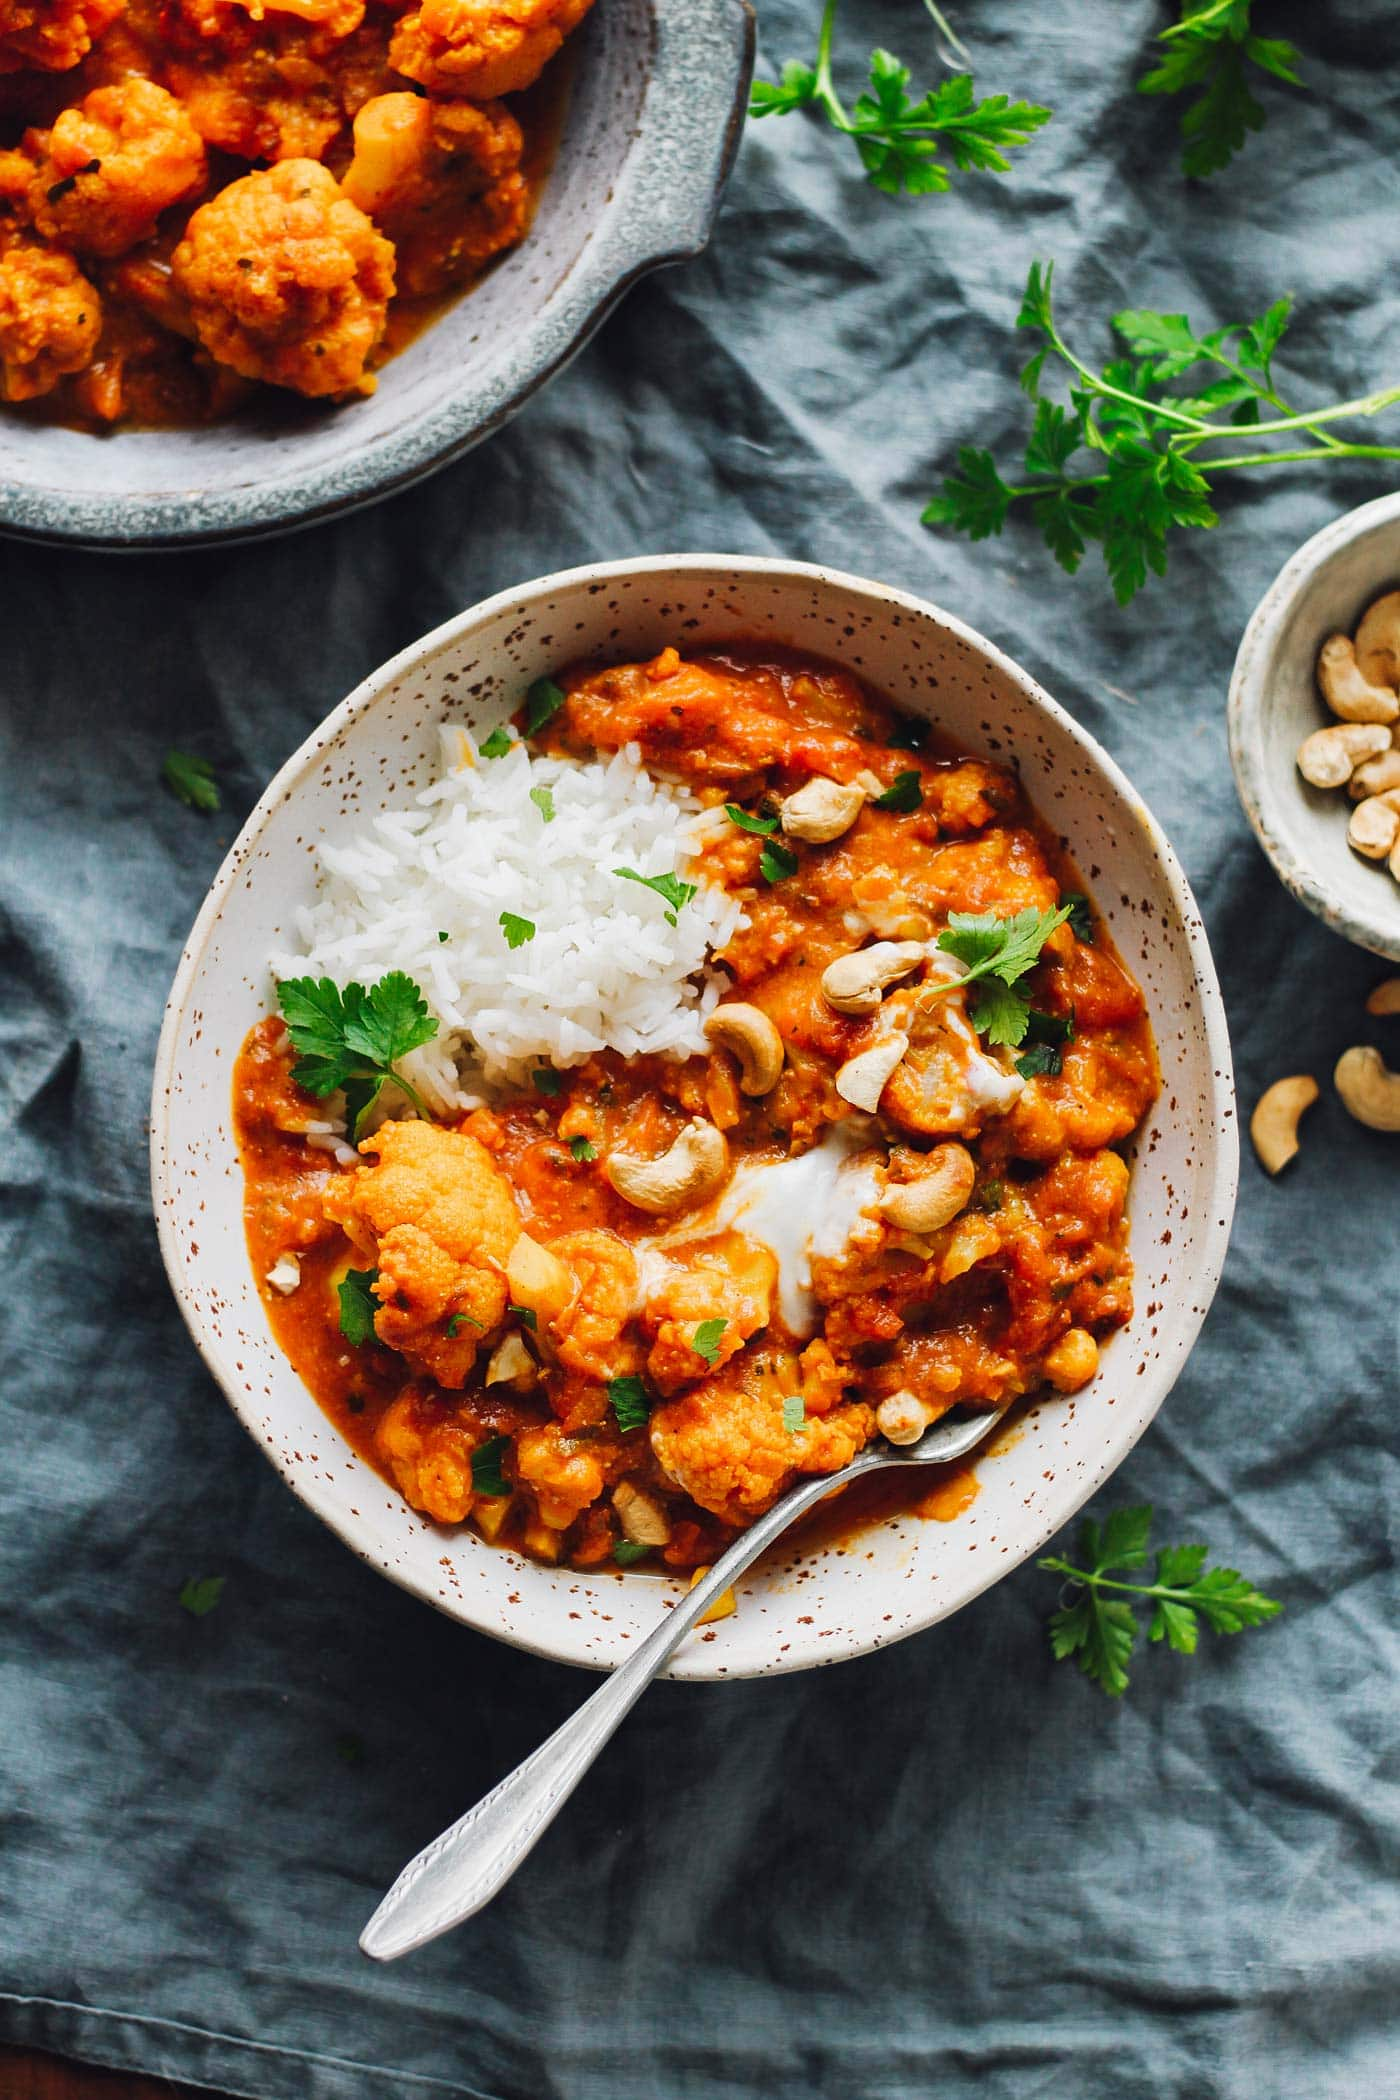 Instant Pot Cauliflower Tikka Masala in a bowl with roasted cashews, cilantro, and rice.